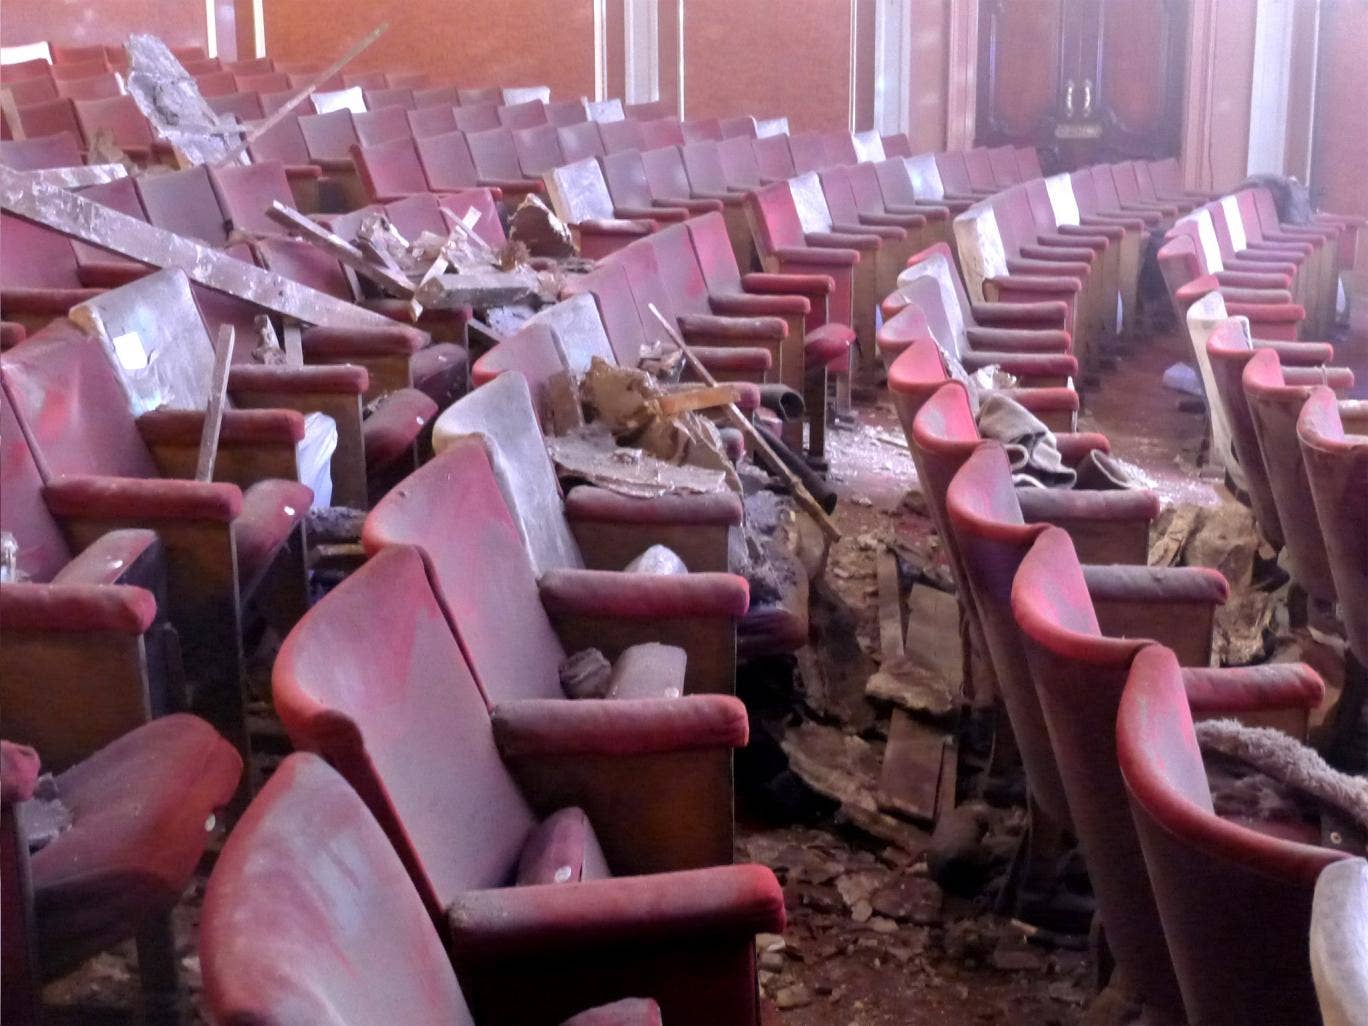 The night the house came down: the scene at the Apollo Theatre after the ceiling collapse